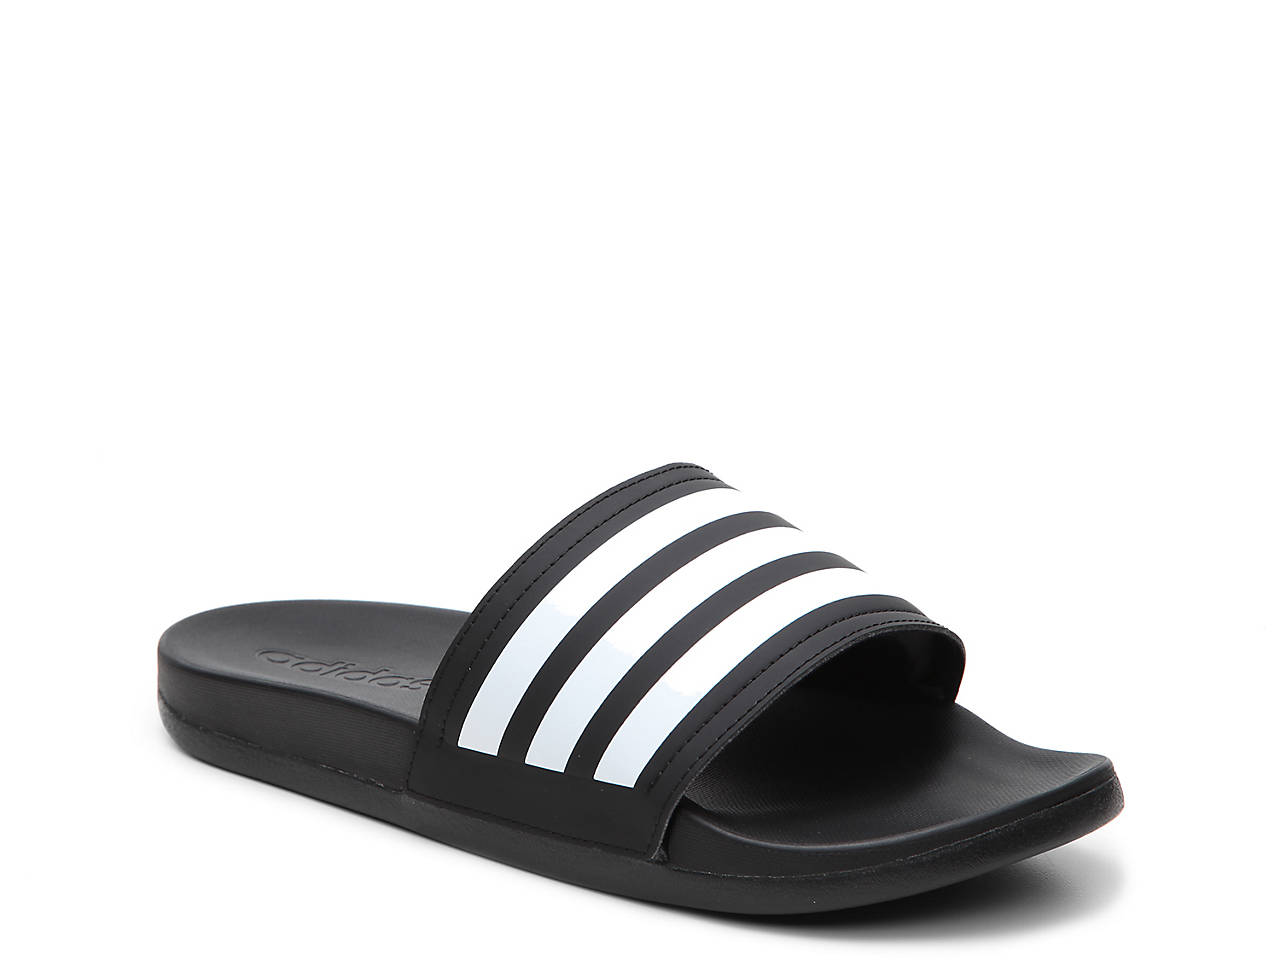 3147ca3ead4 adidas Adilette Cloudfoam Ultra Stripes Slide Sandal - Women s ...